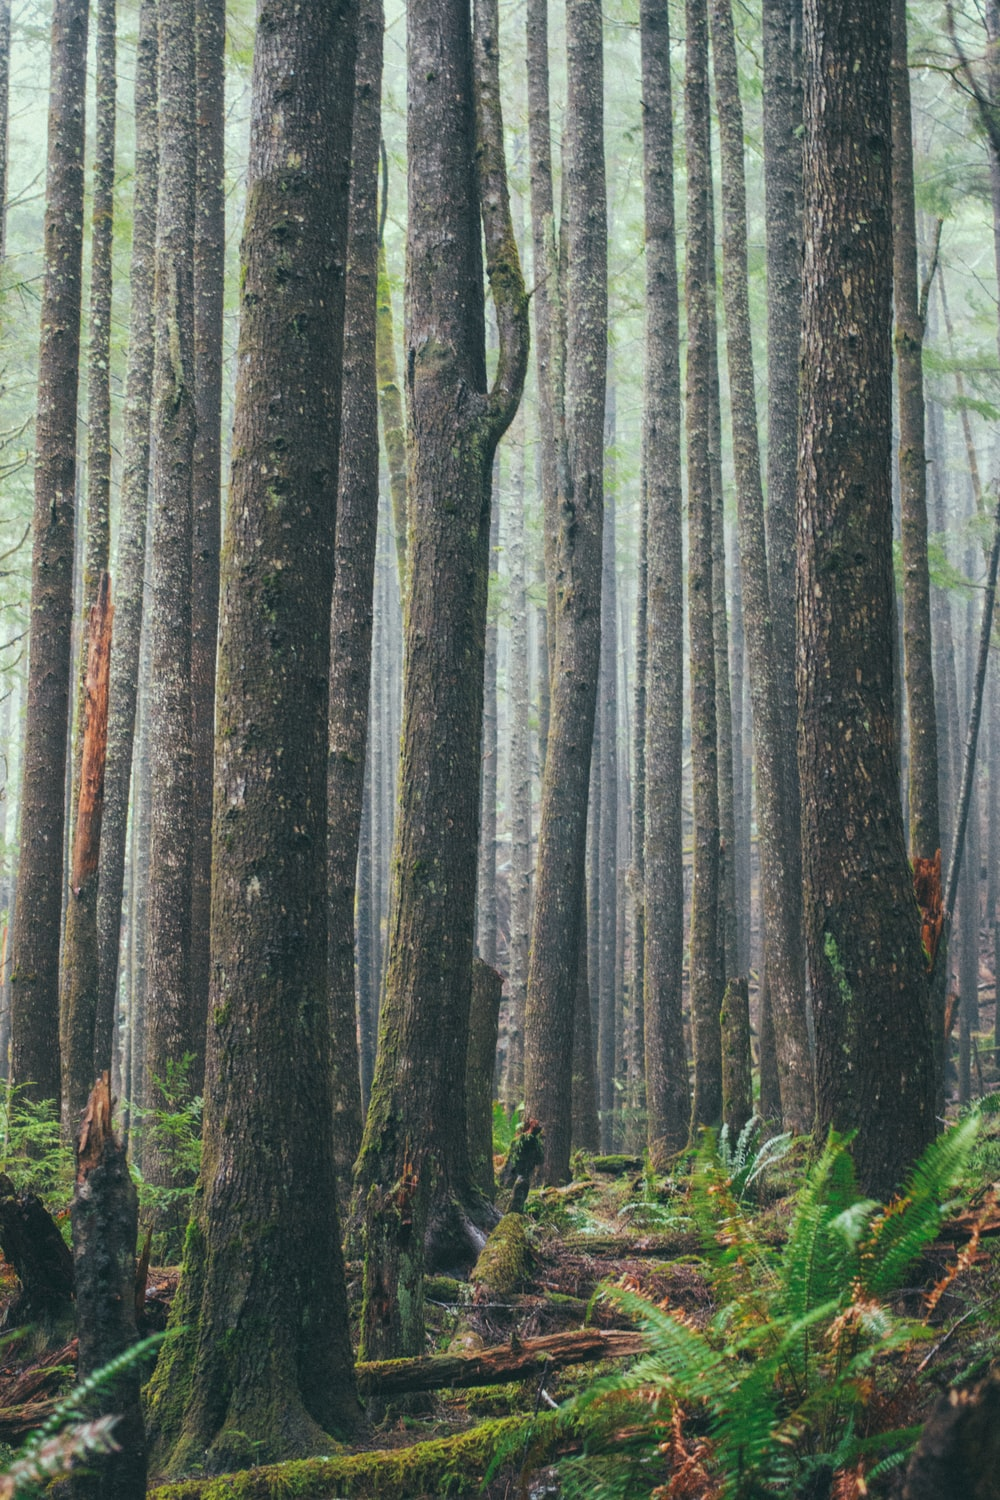 trees on forest